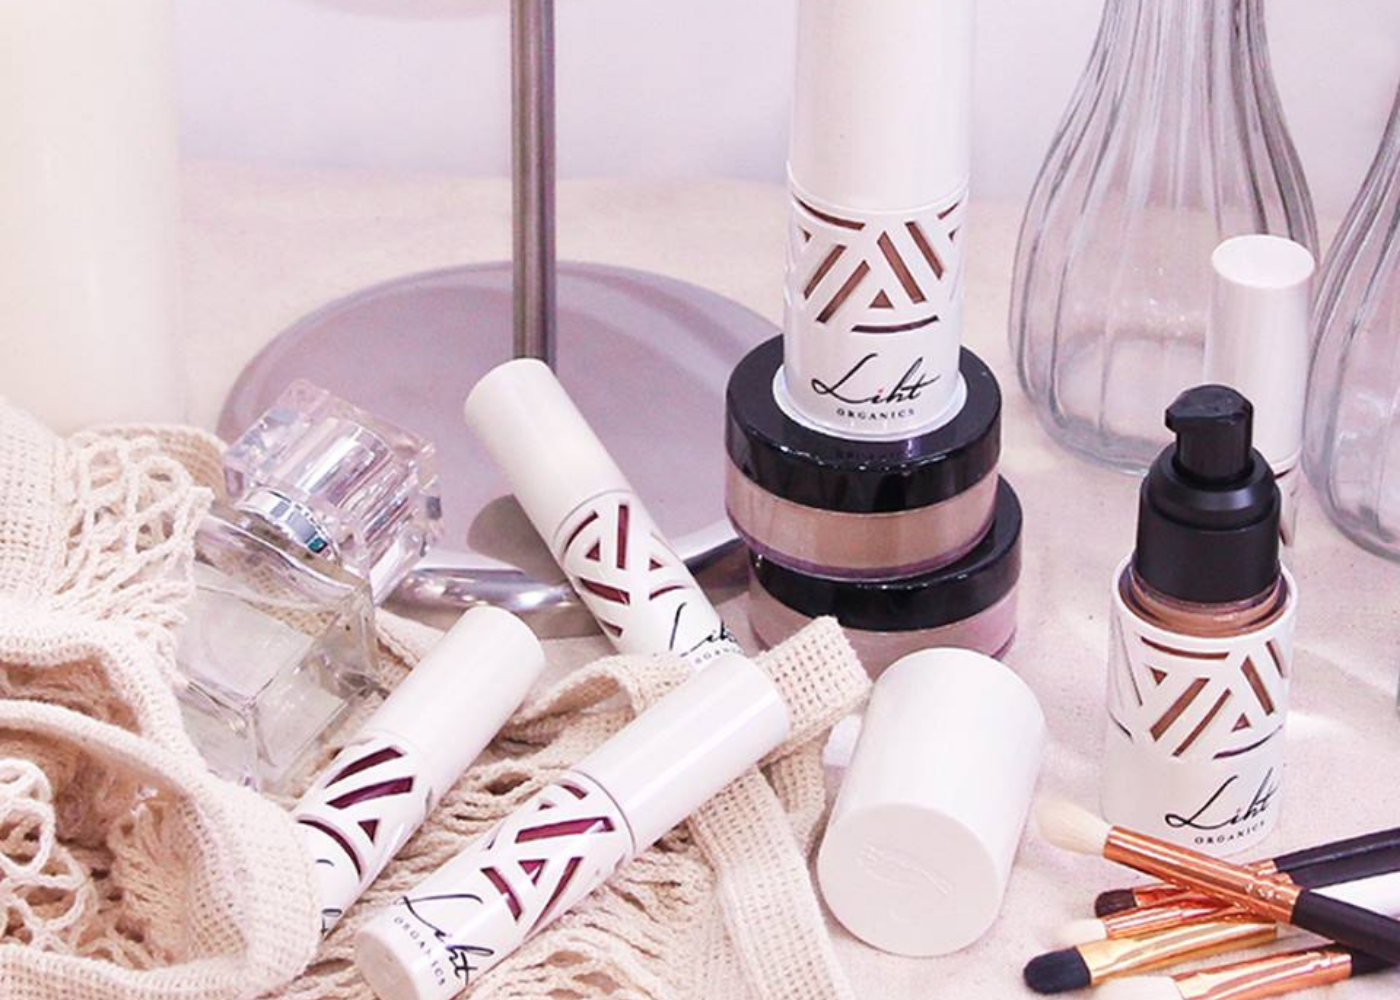 Local beauty gurus: Singapore beauty brands you need to know about